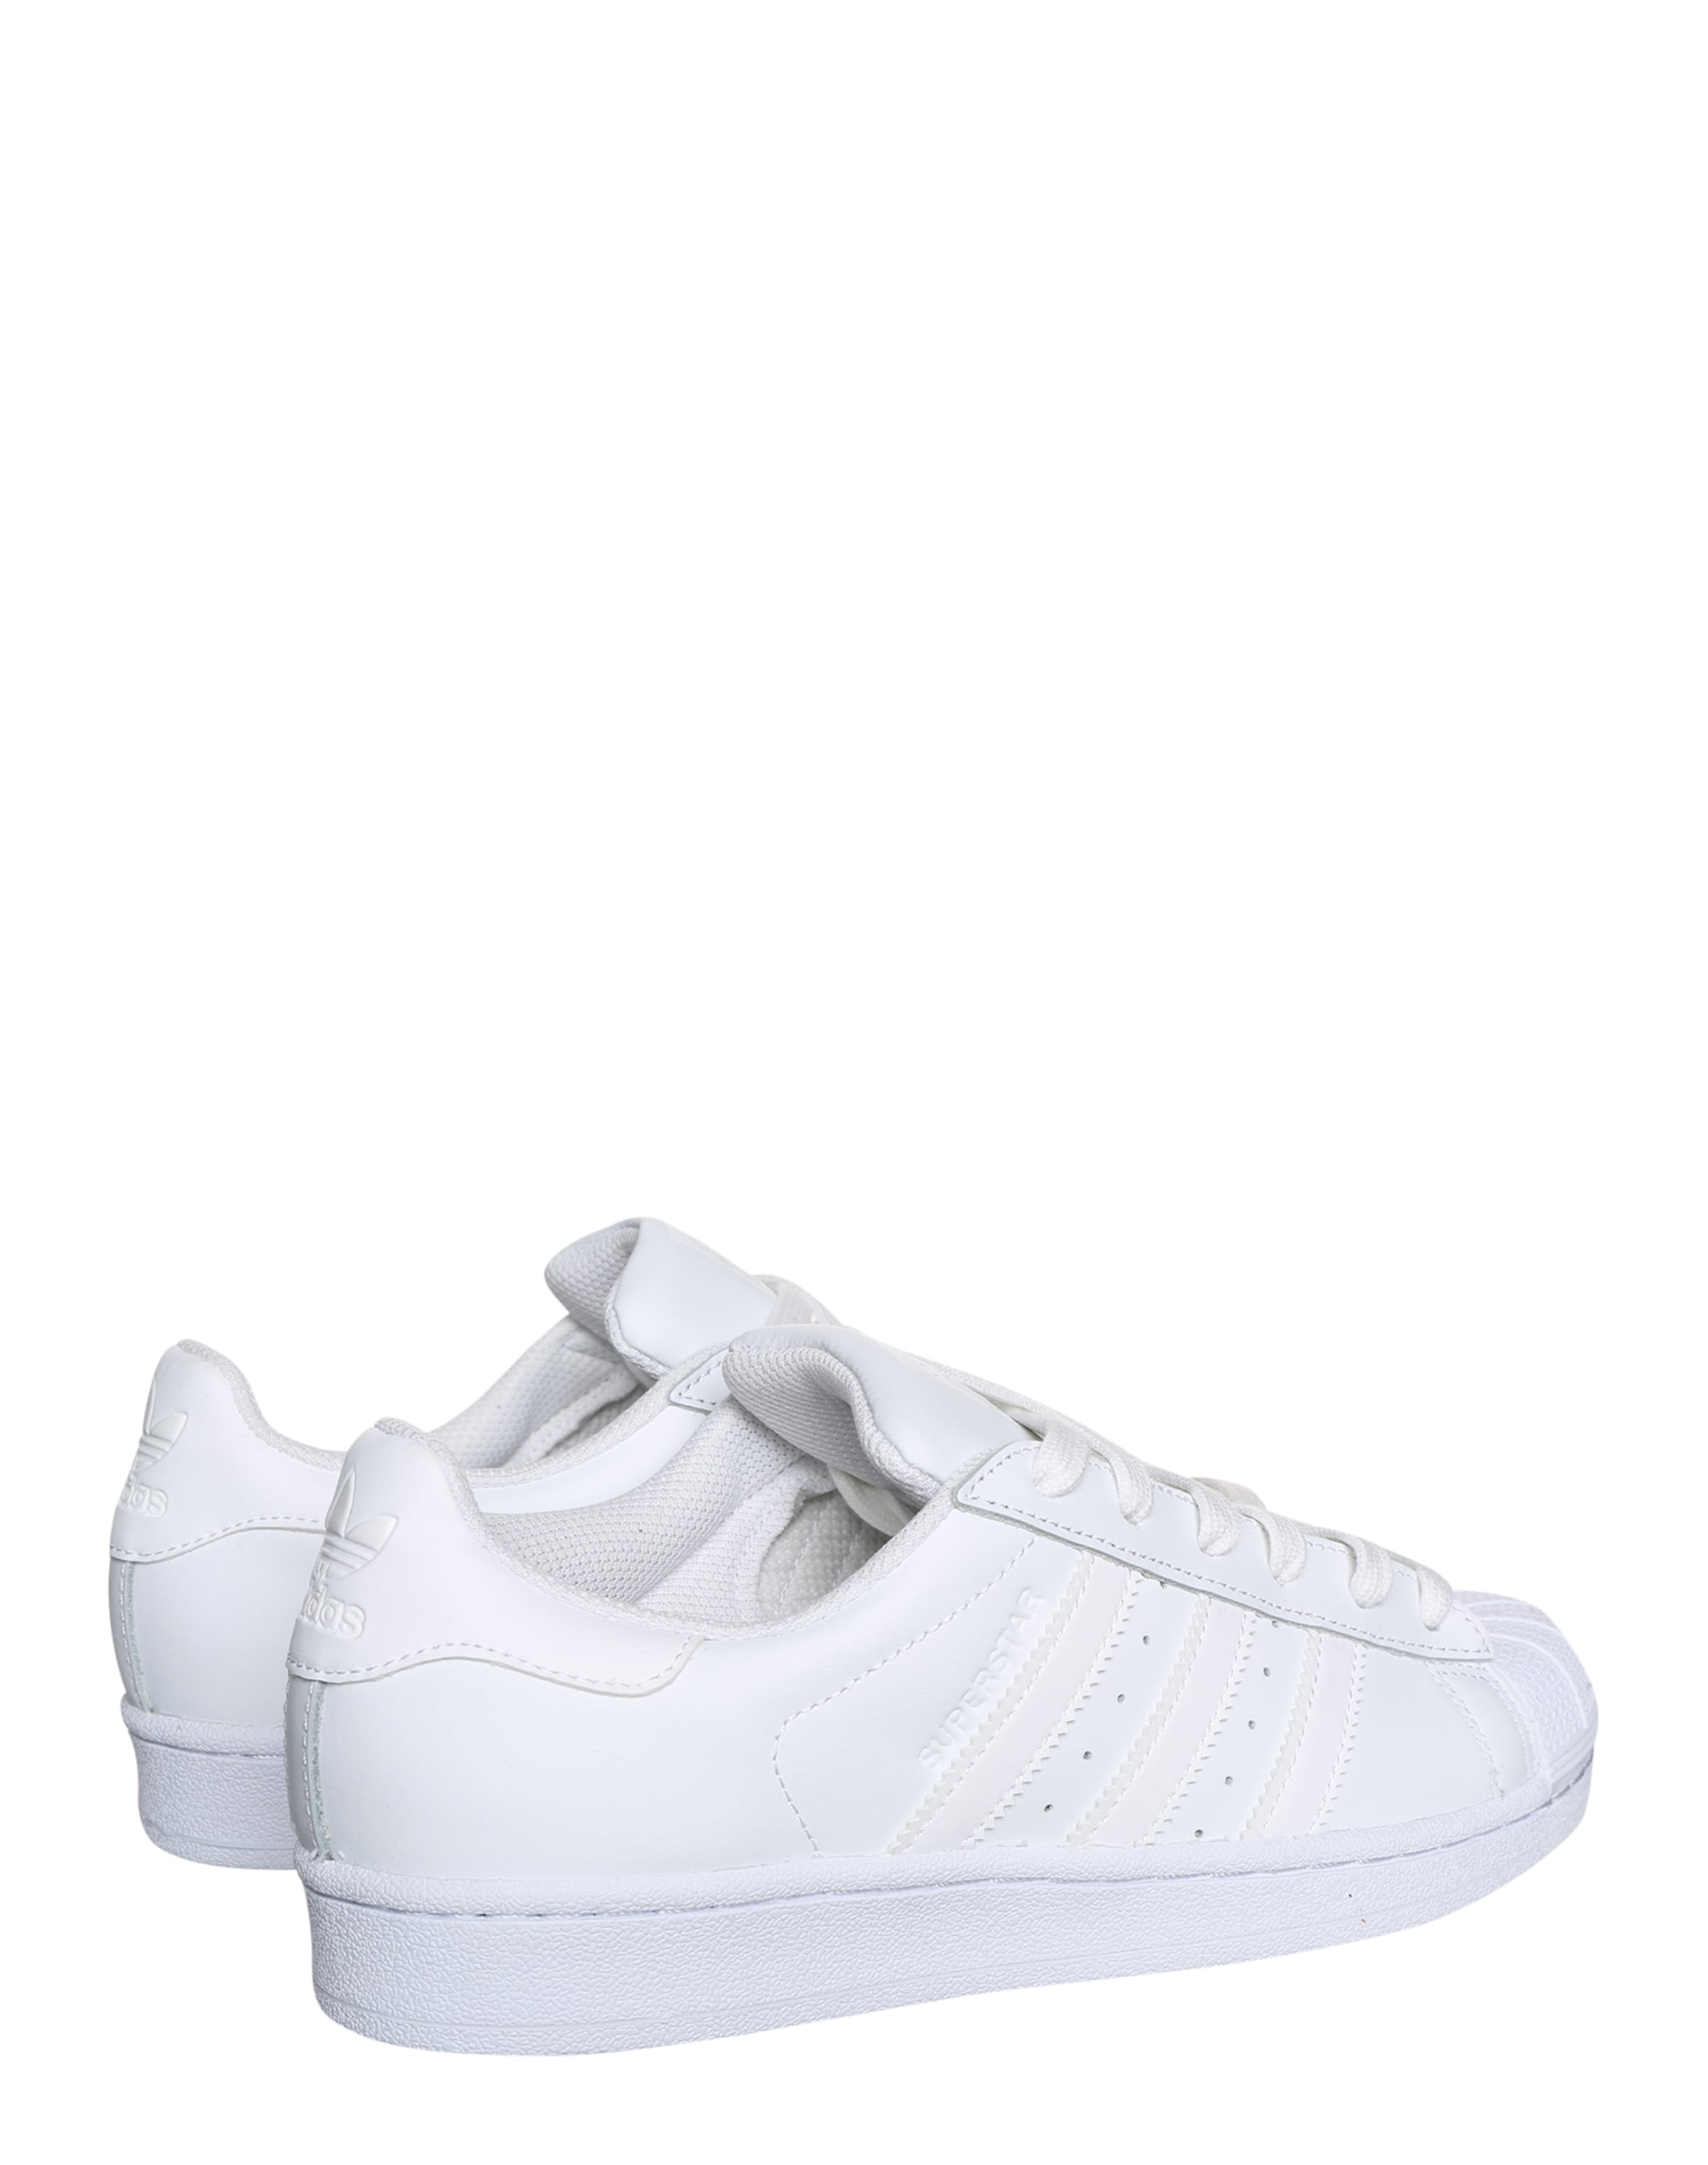 Originals Weiß In Adidas Sneaker 'superstar' y80wOmNvn